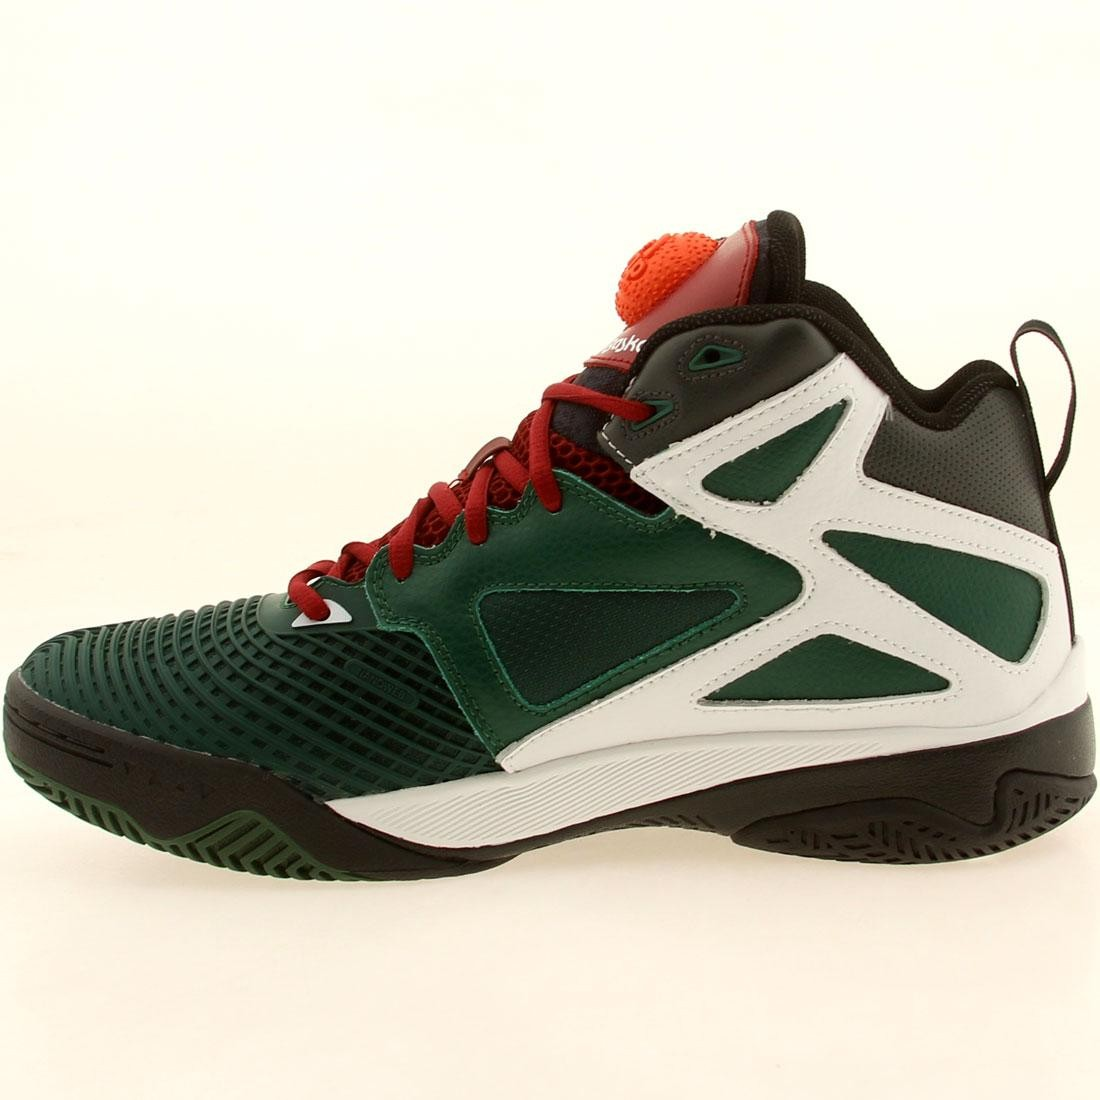 3f552e971a27 Reebok Men Blacktop Retaliate (green   dark green   white   red   silver)